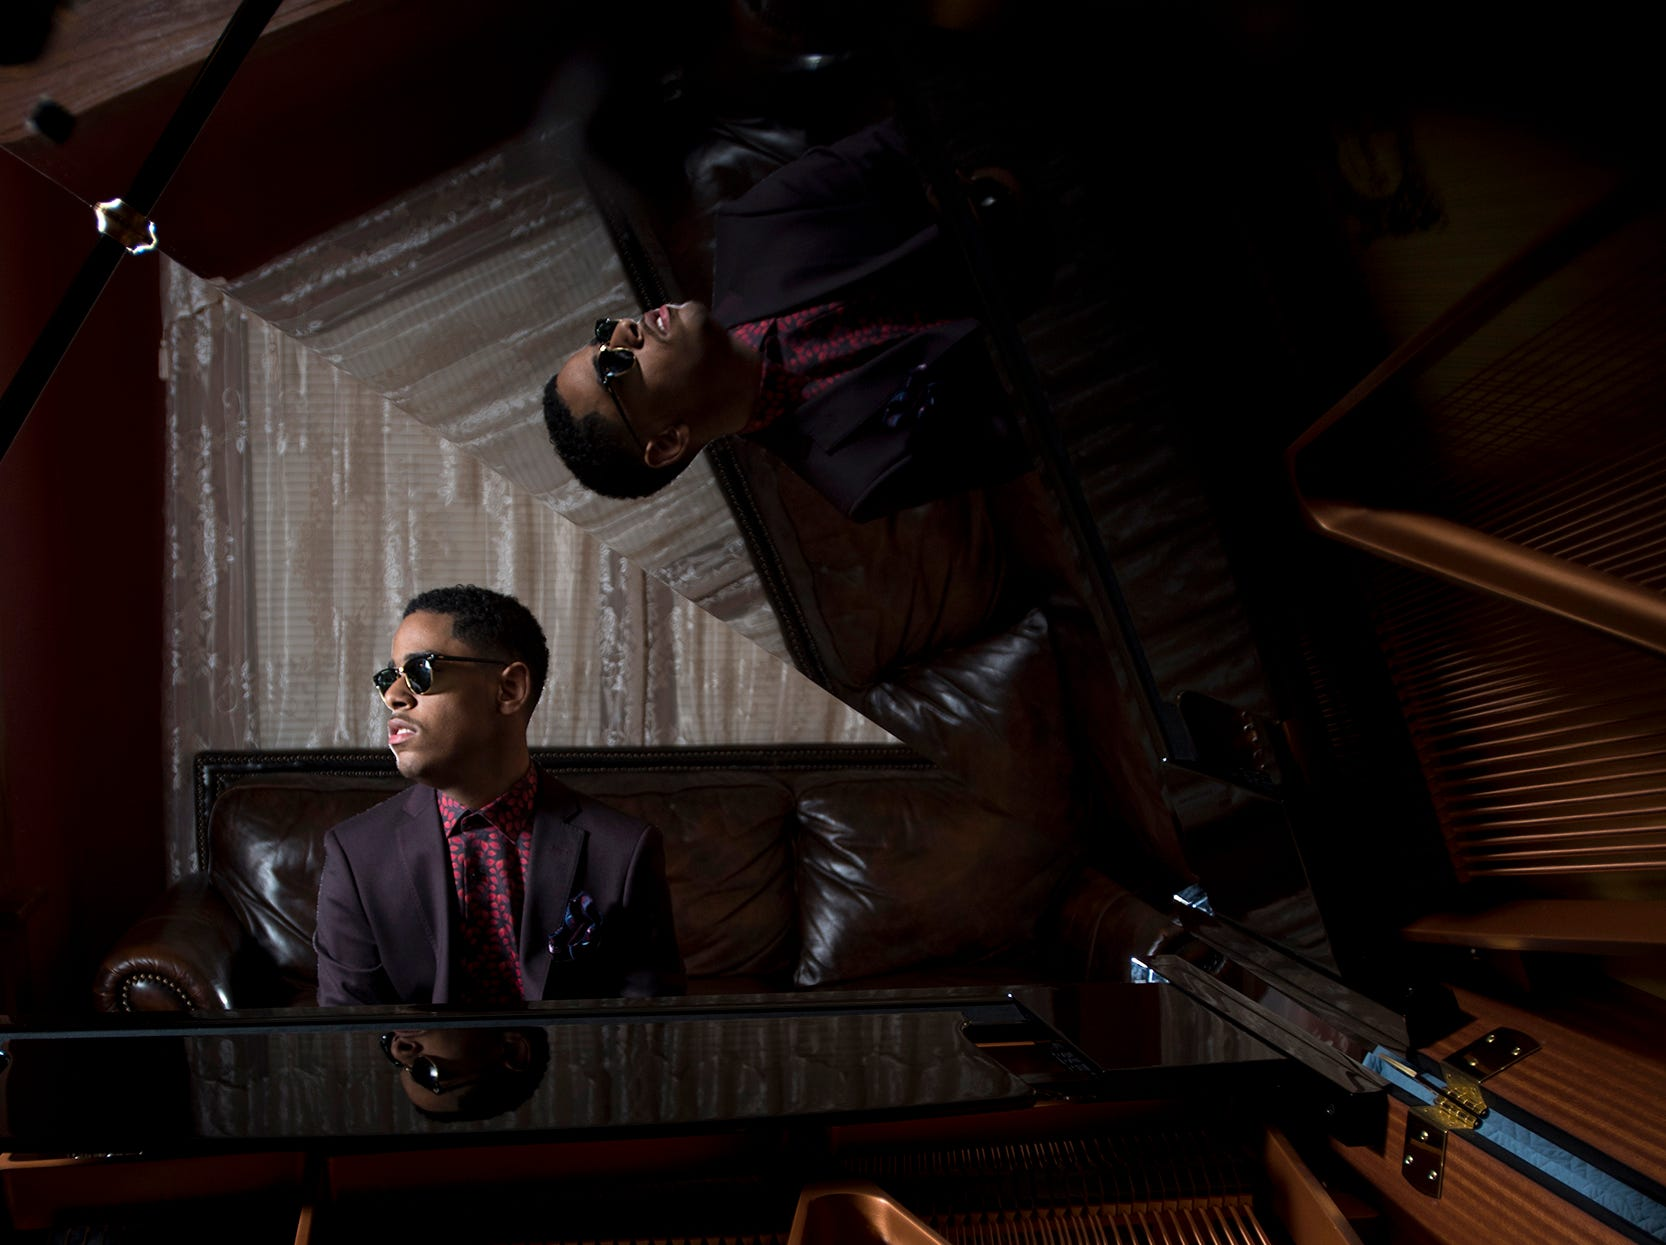 Matthew Whitaker, a teen-age piano prodigy from Hackensack, NJ is making quite a splash on TV and in concert venues worldwide. Whitaker plays the piano at his home on Friday February 16, 2018.